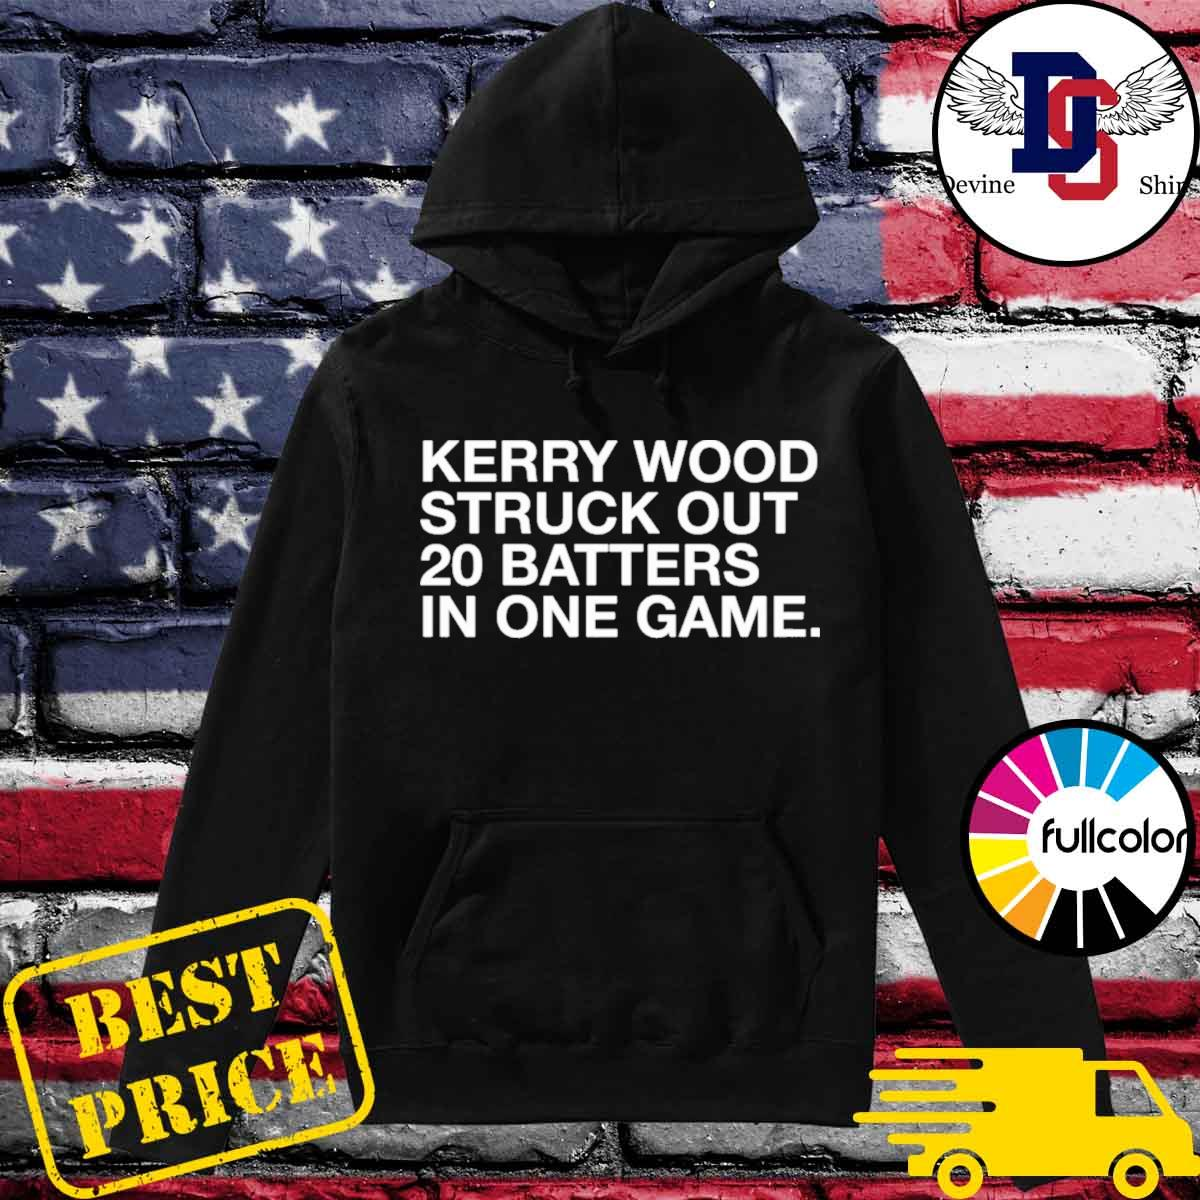 Kerry Wood Struck Out 20 Batters In One Game Shirt Hoodie